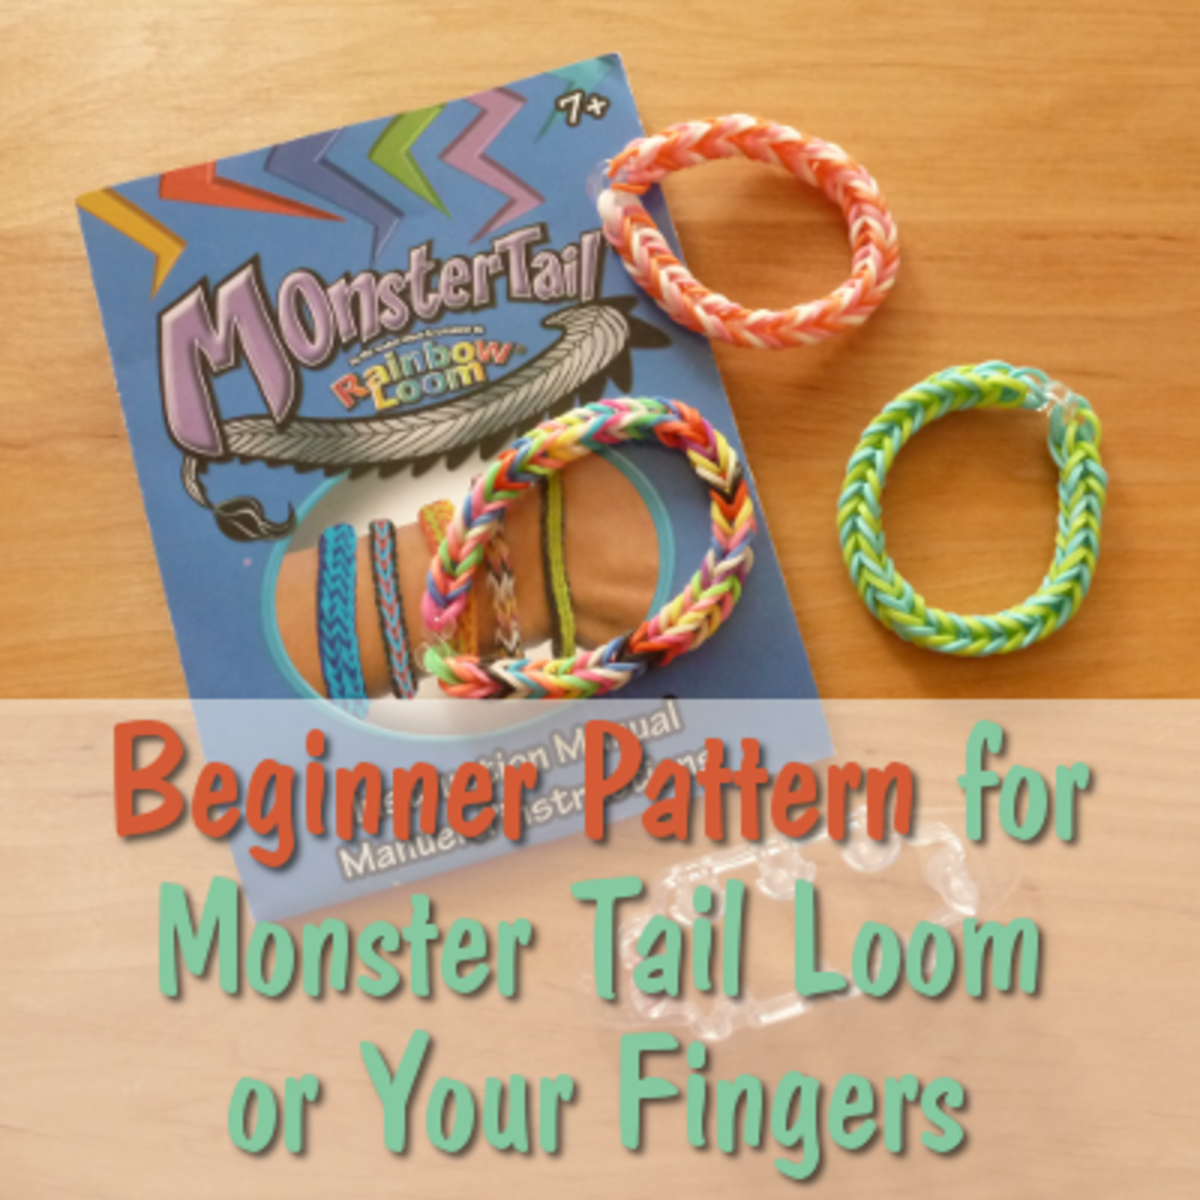 Beginner Pattern For The Monster Tail Rainbow Loom Hubpages